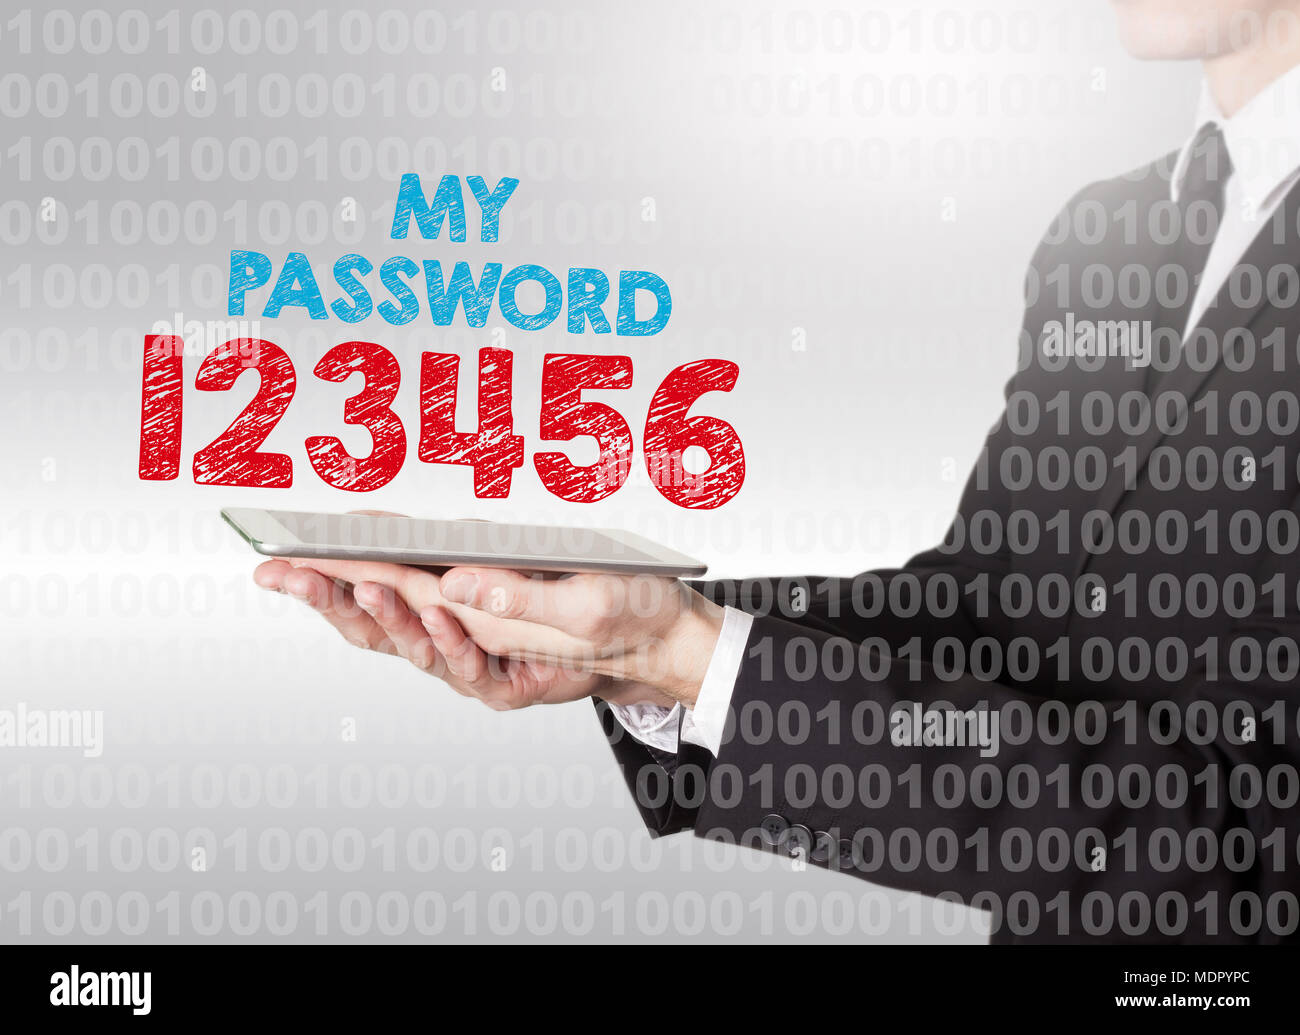 Internet password security concept. Binary code with text. Man holding a tablet computer - Stock Image